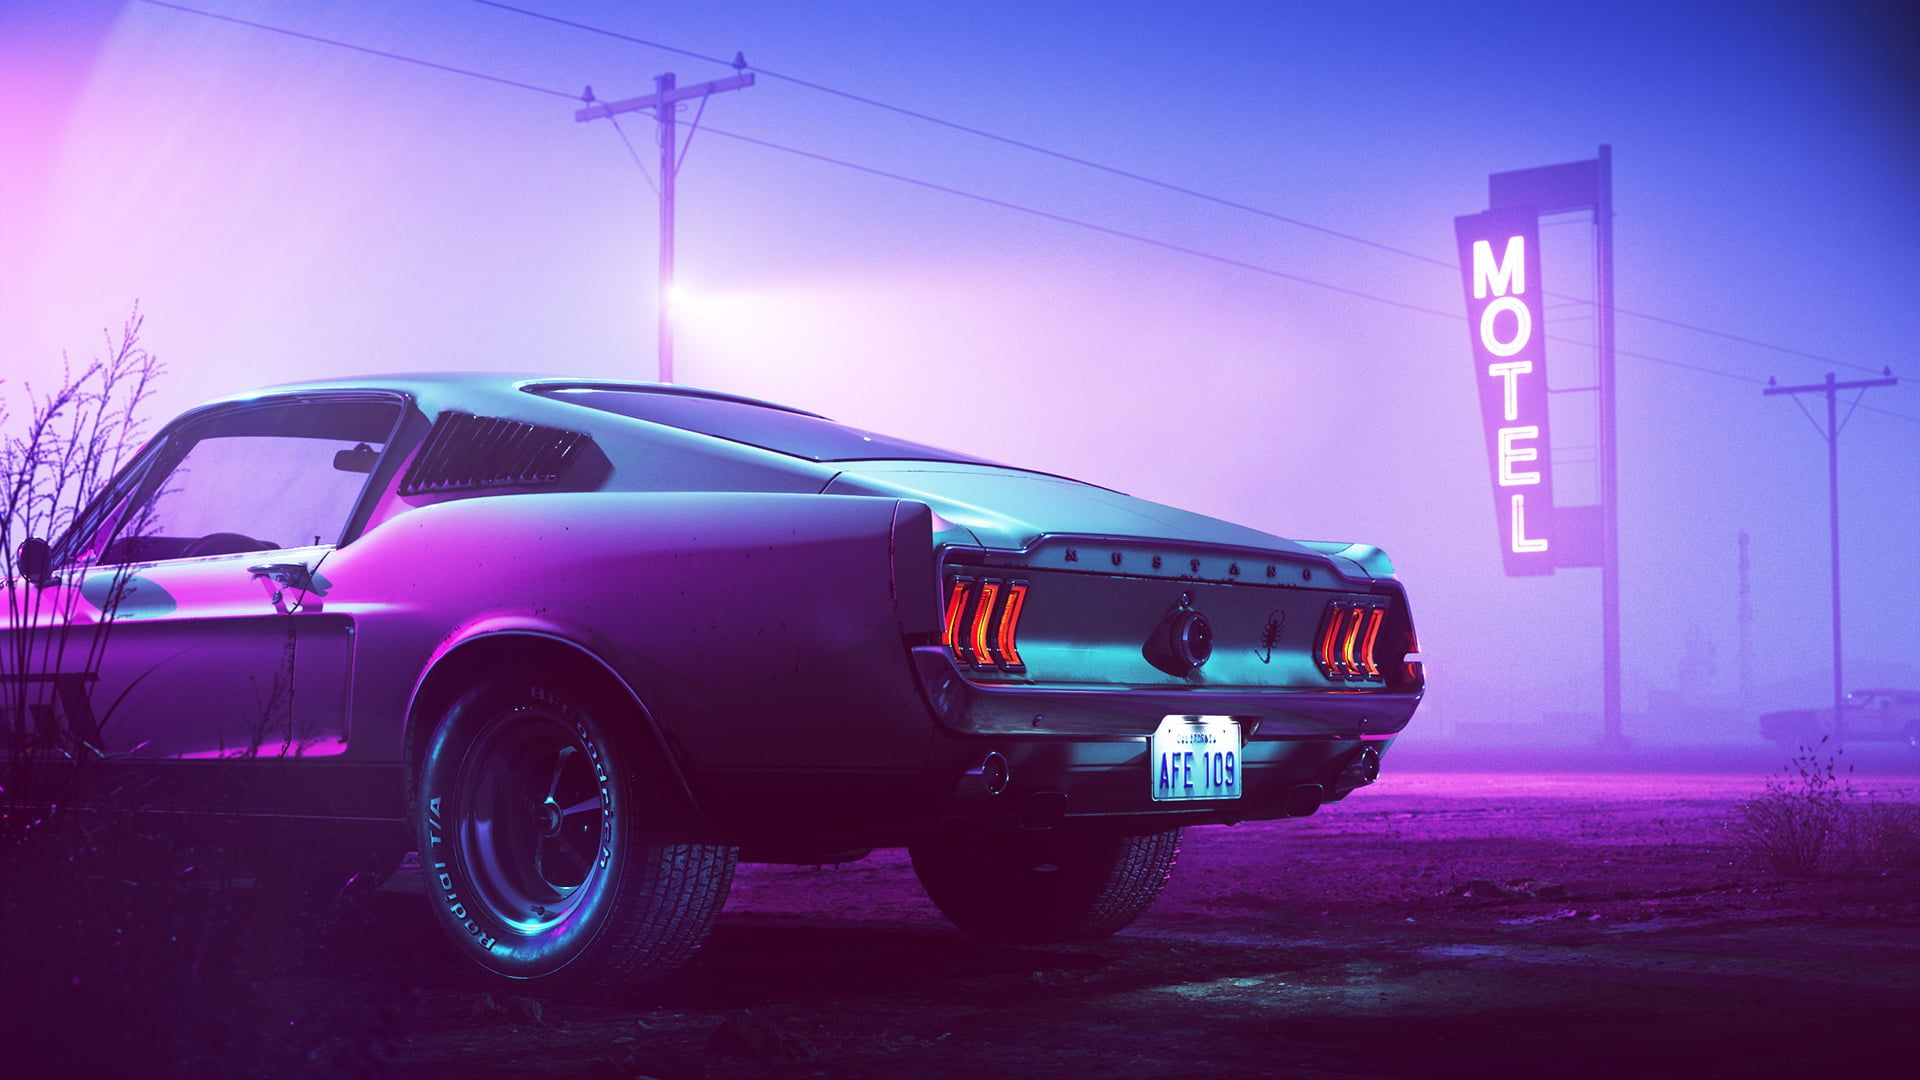 Purple Coupe 1965 Ford Mustang Photography Motel Mist 1080p Wallpaper Hdwallpaper Desktop Ford Mustang Wallpaper Mustang Wallpaper Ford Mustang Gt